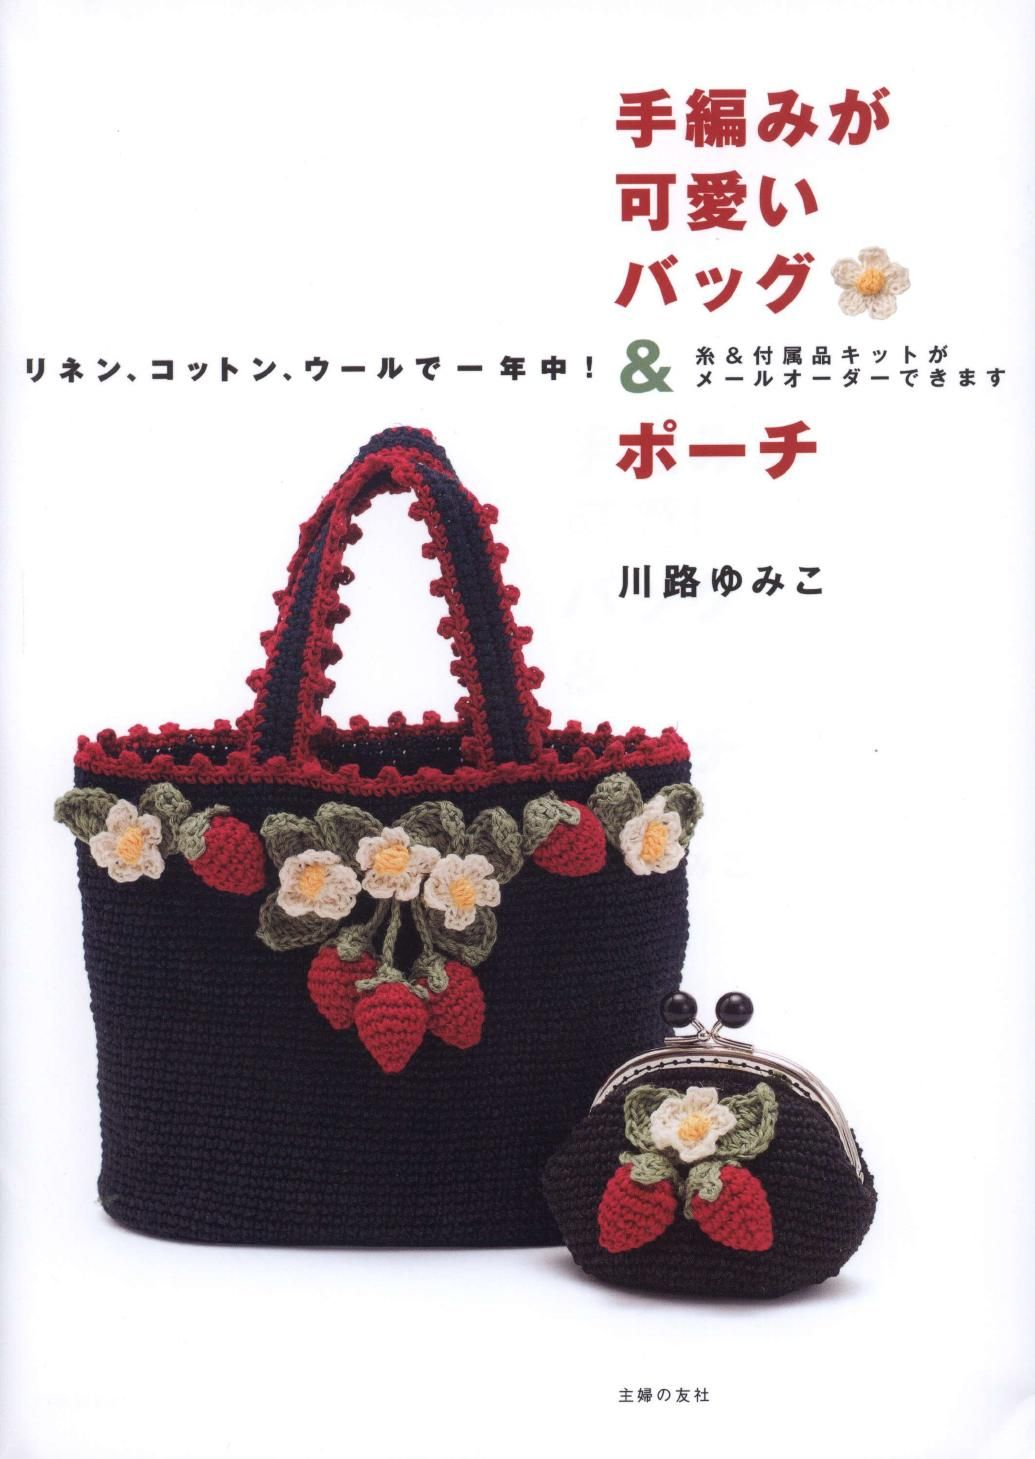 Crochet and knit cute bag and pouch | REVISTAS JAPONESAS | Pinterest